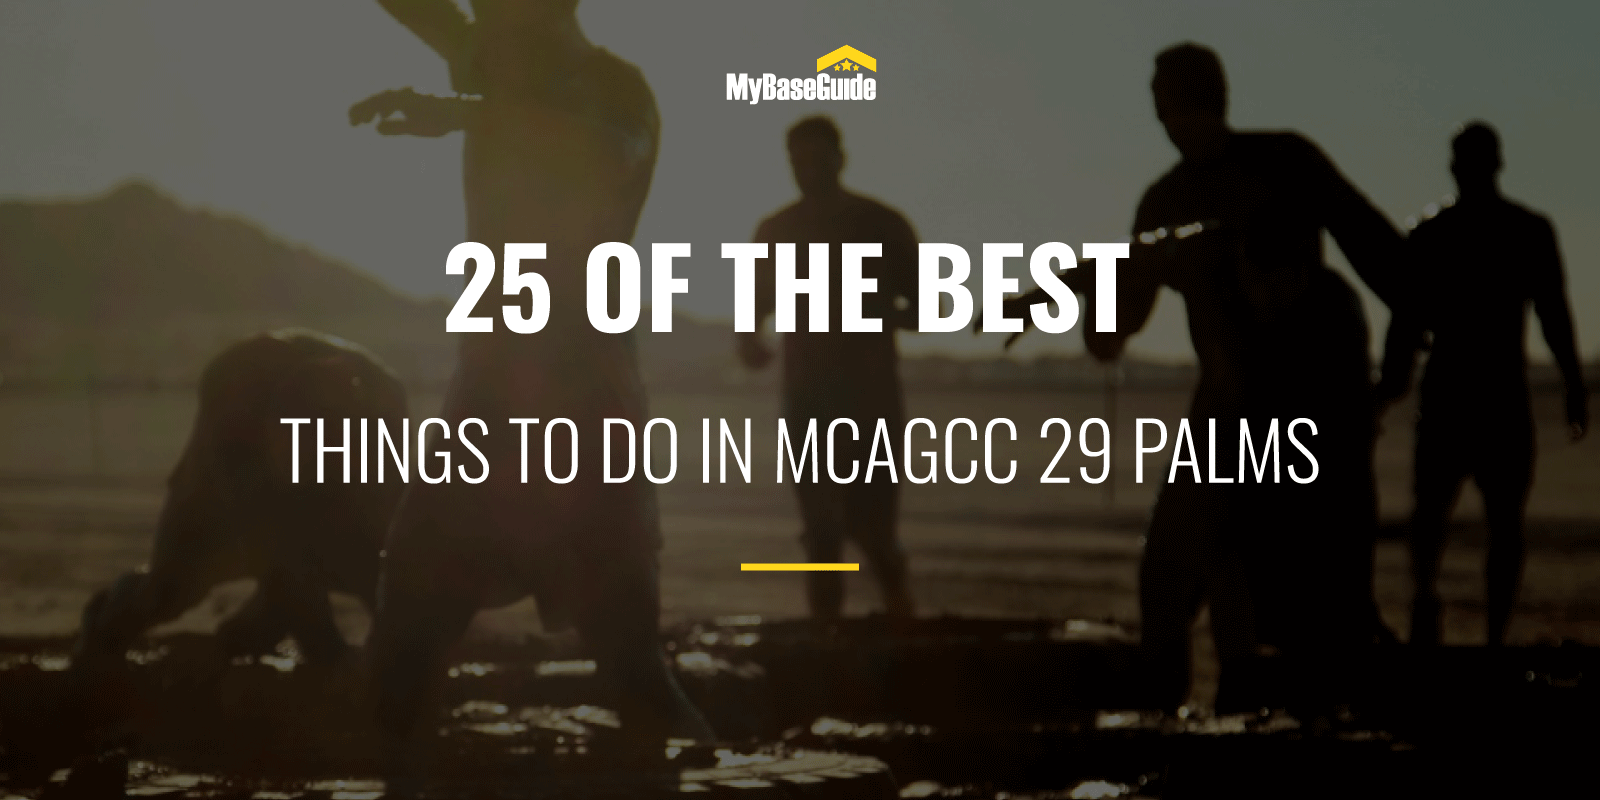 25 Of the Best Things to Do in MCAGCC 29 Palm